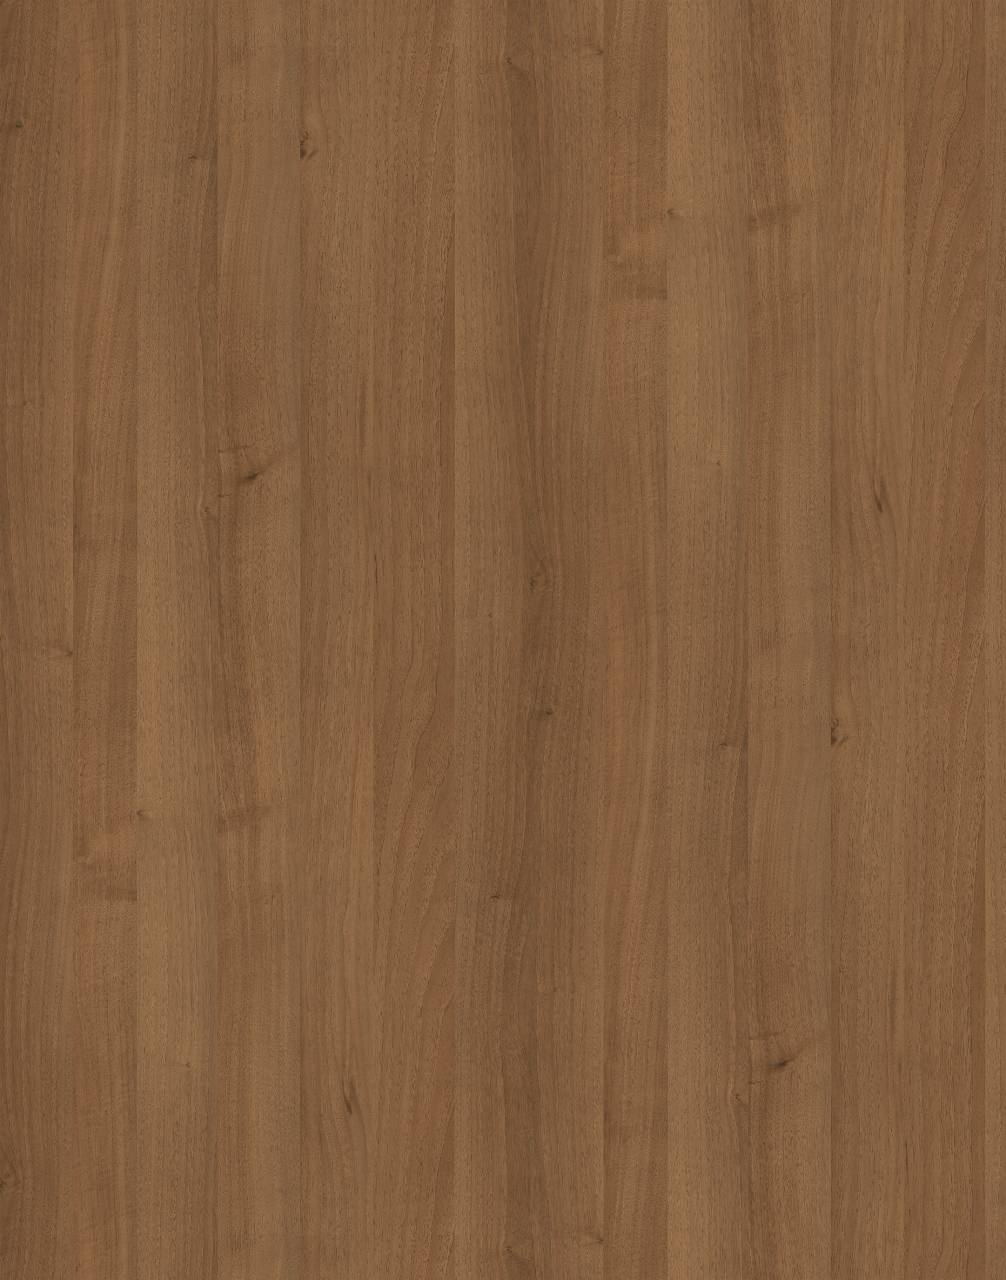 9455 Guarnieri Walnut (мостра ЛПДЧ)